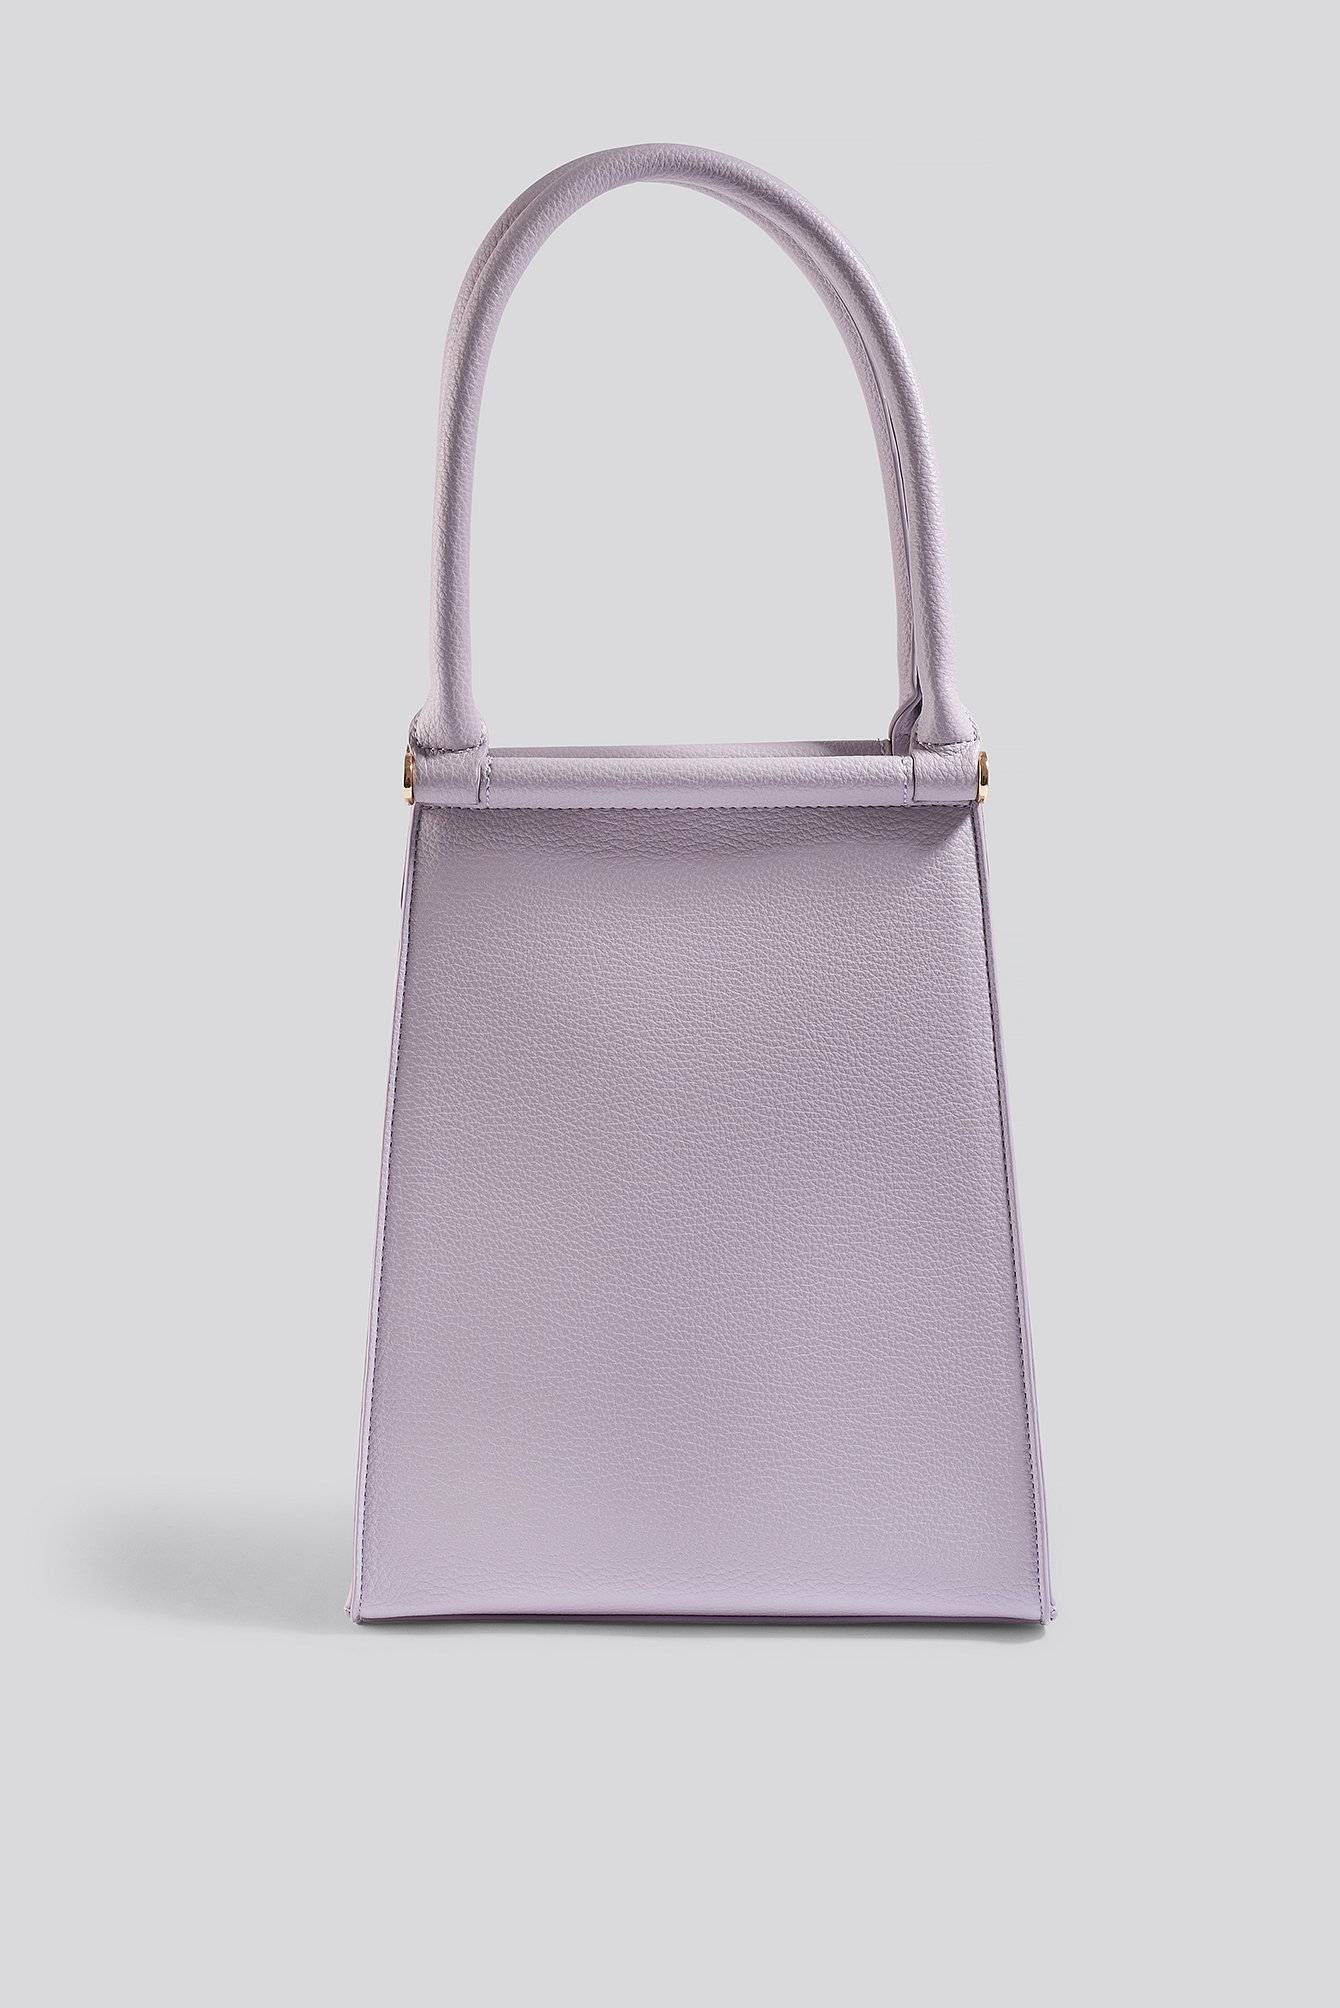 NA-KD Accessories Top Handle Trapeze Bag - Purple  - Size: One Size